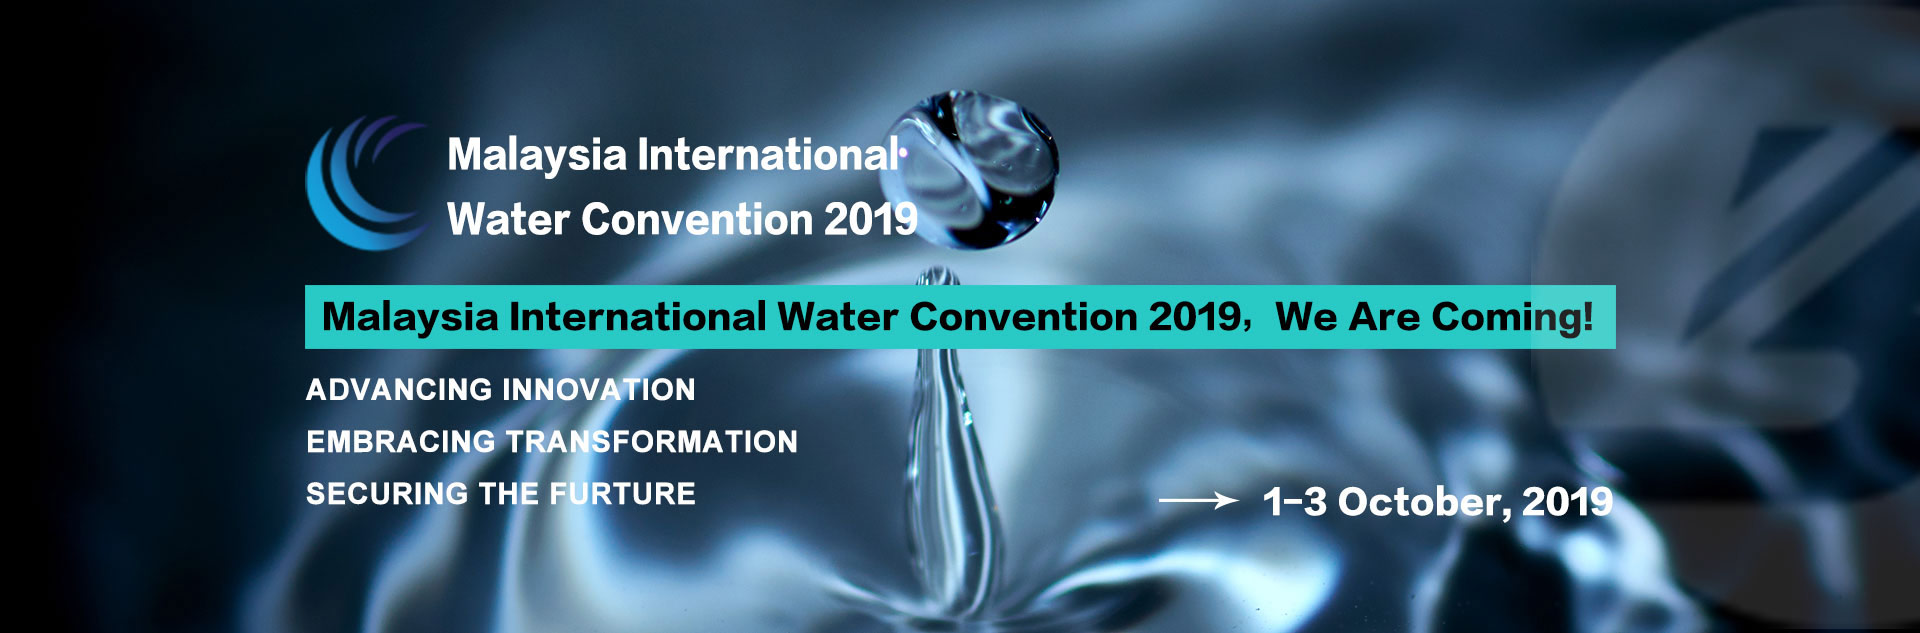 Beston will attend the Malaysian International Water Conference in 2019